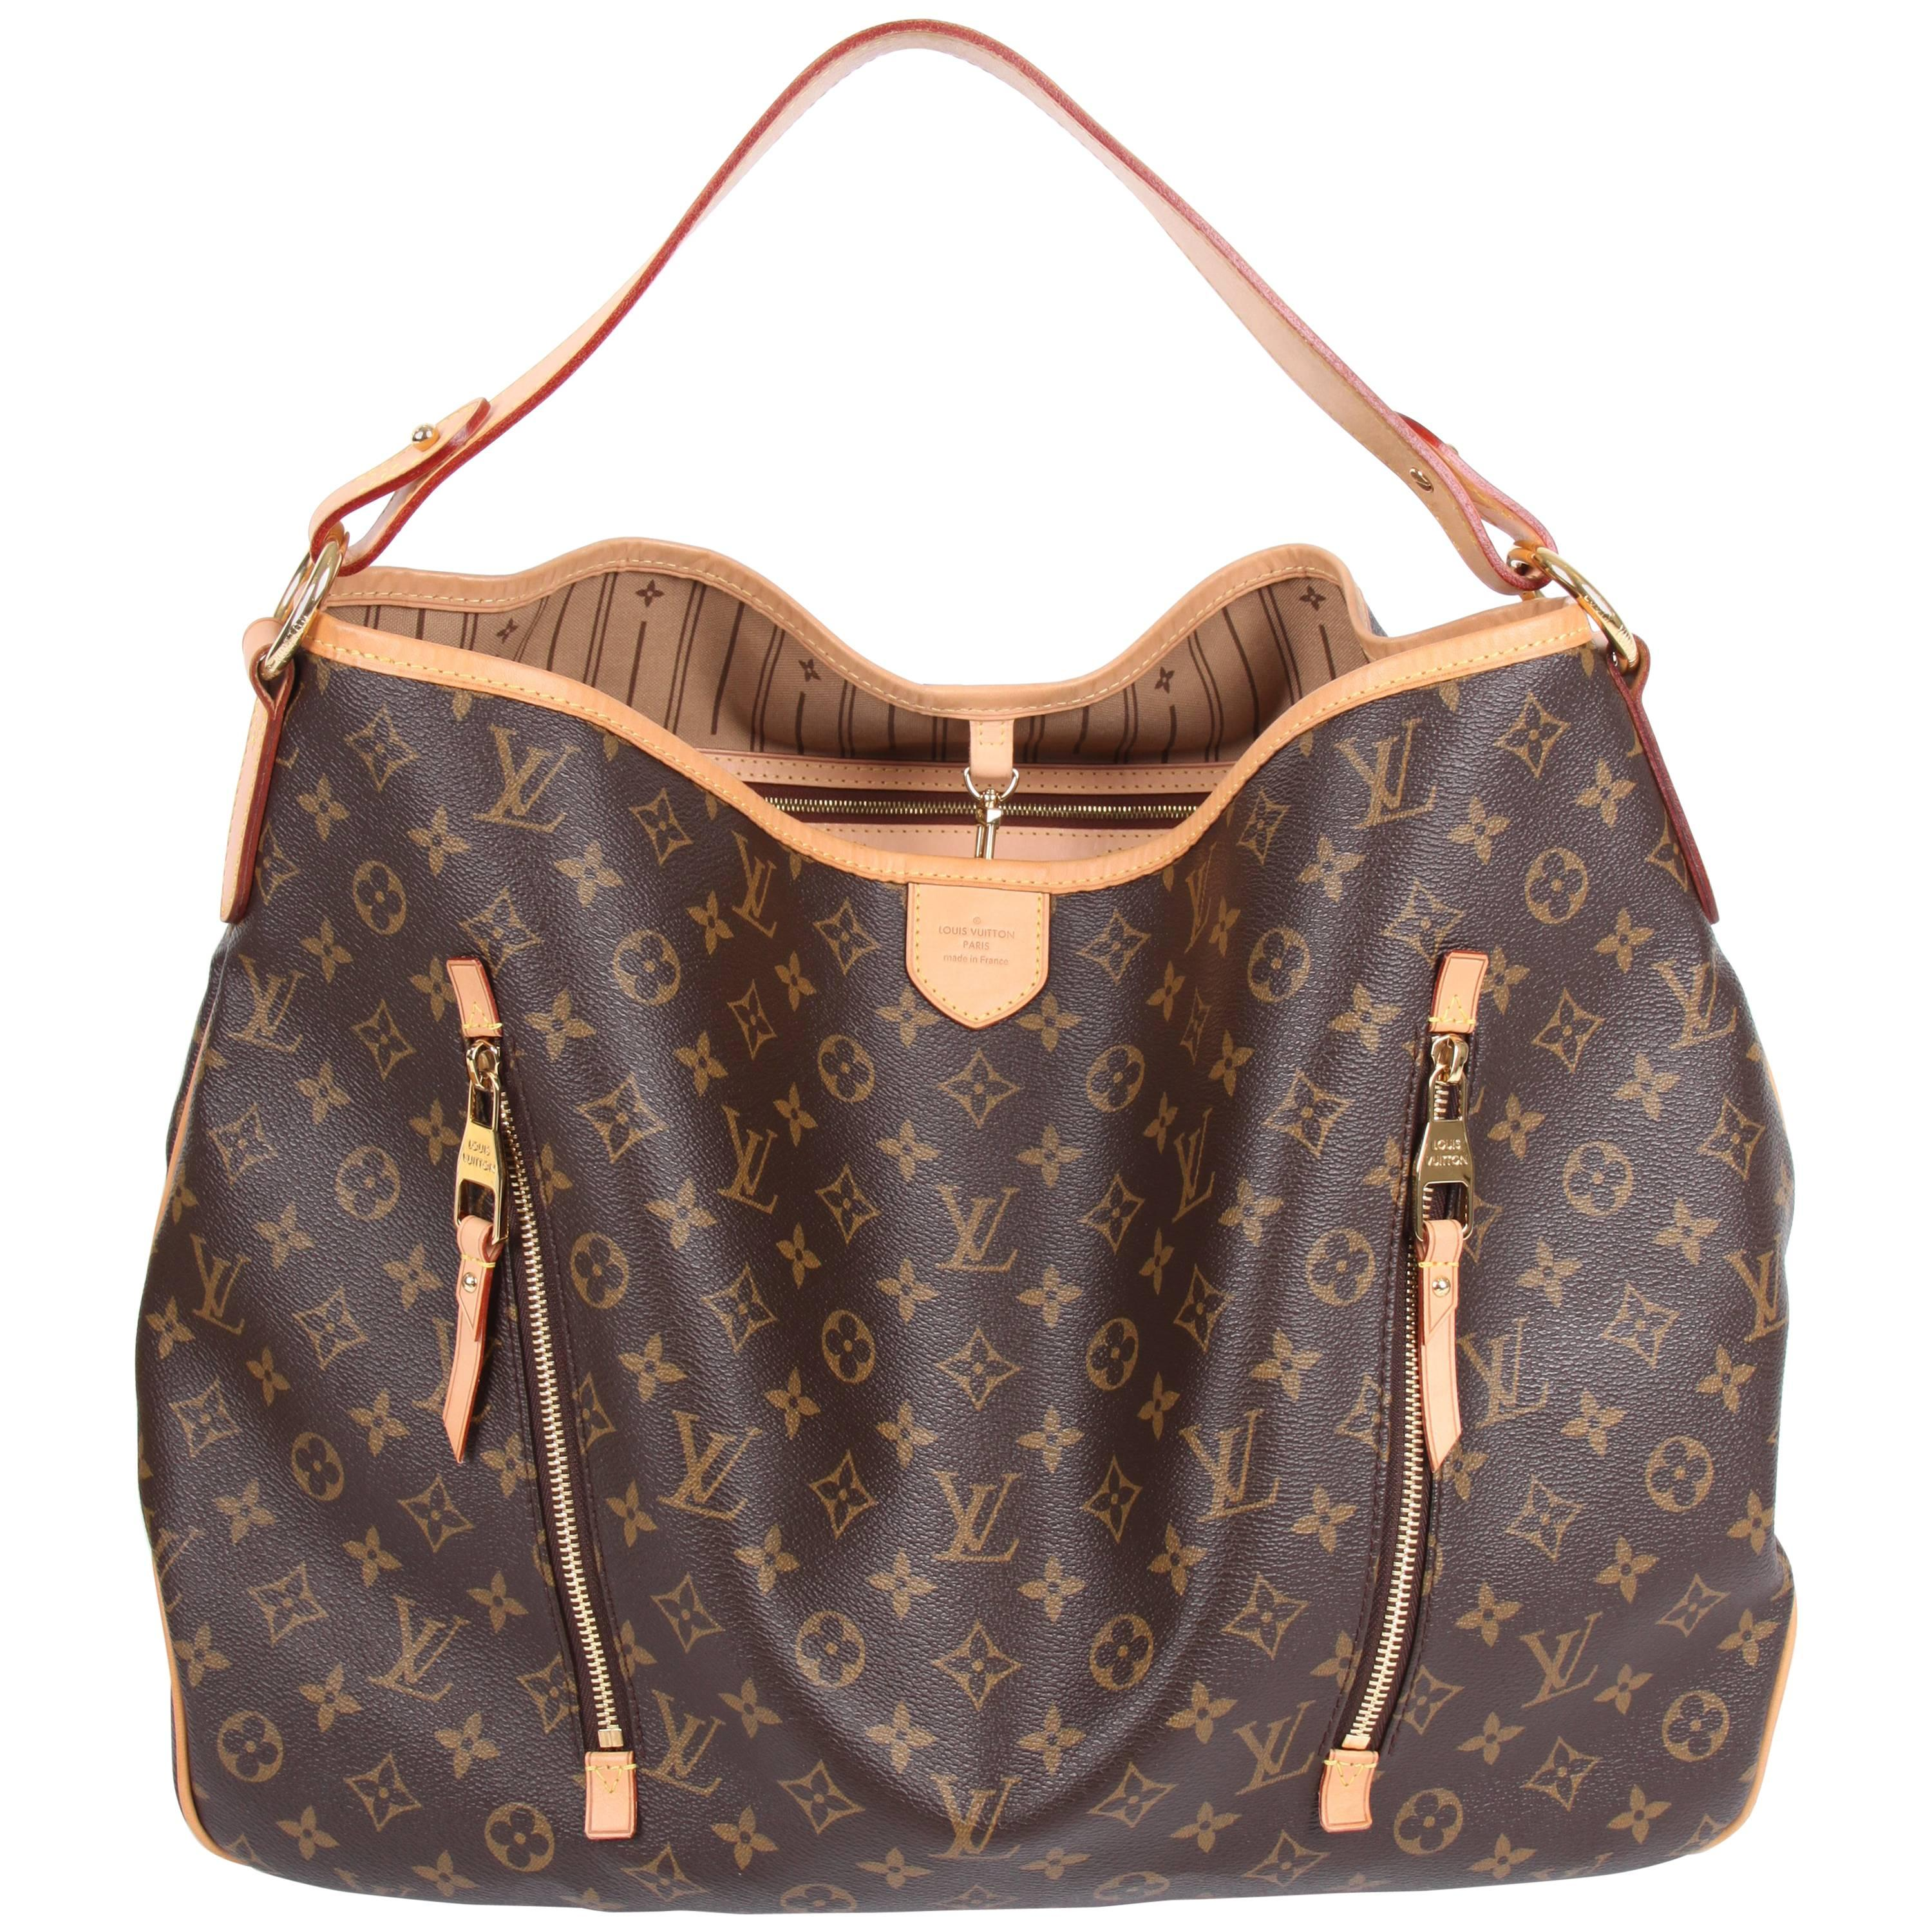 Louis Vuitton Made In France >> Louis Vuitton Delightful Gm Monogram Canvas Bag Brown At 1stdibs